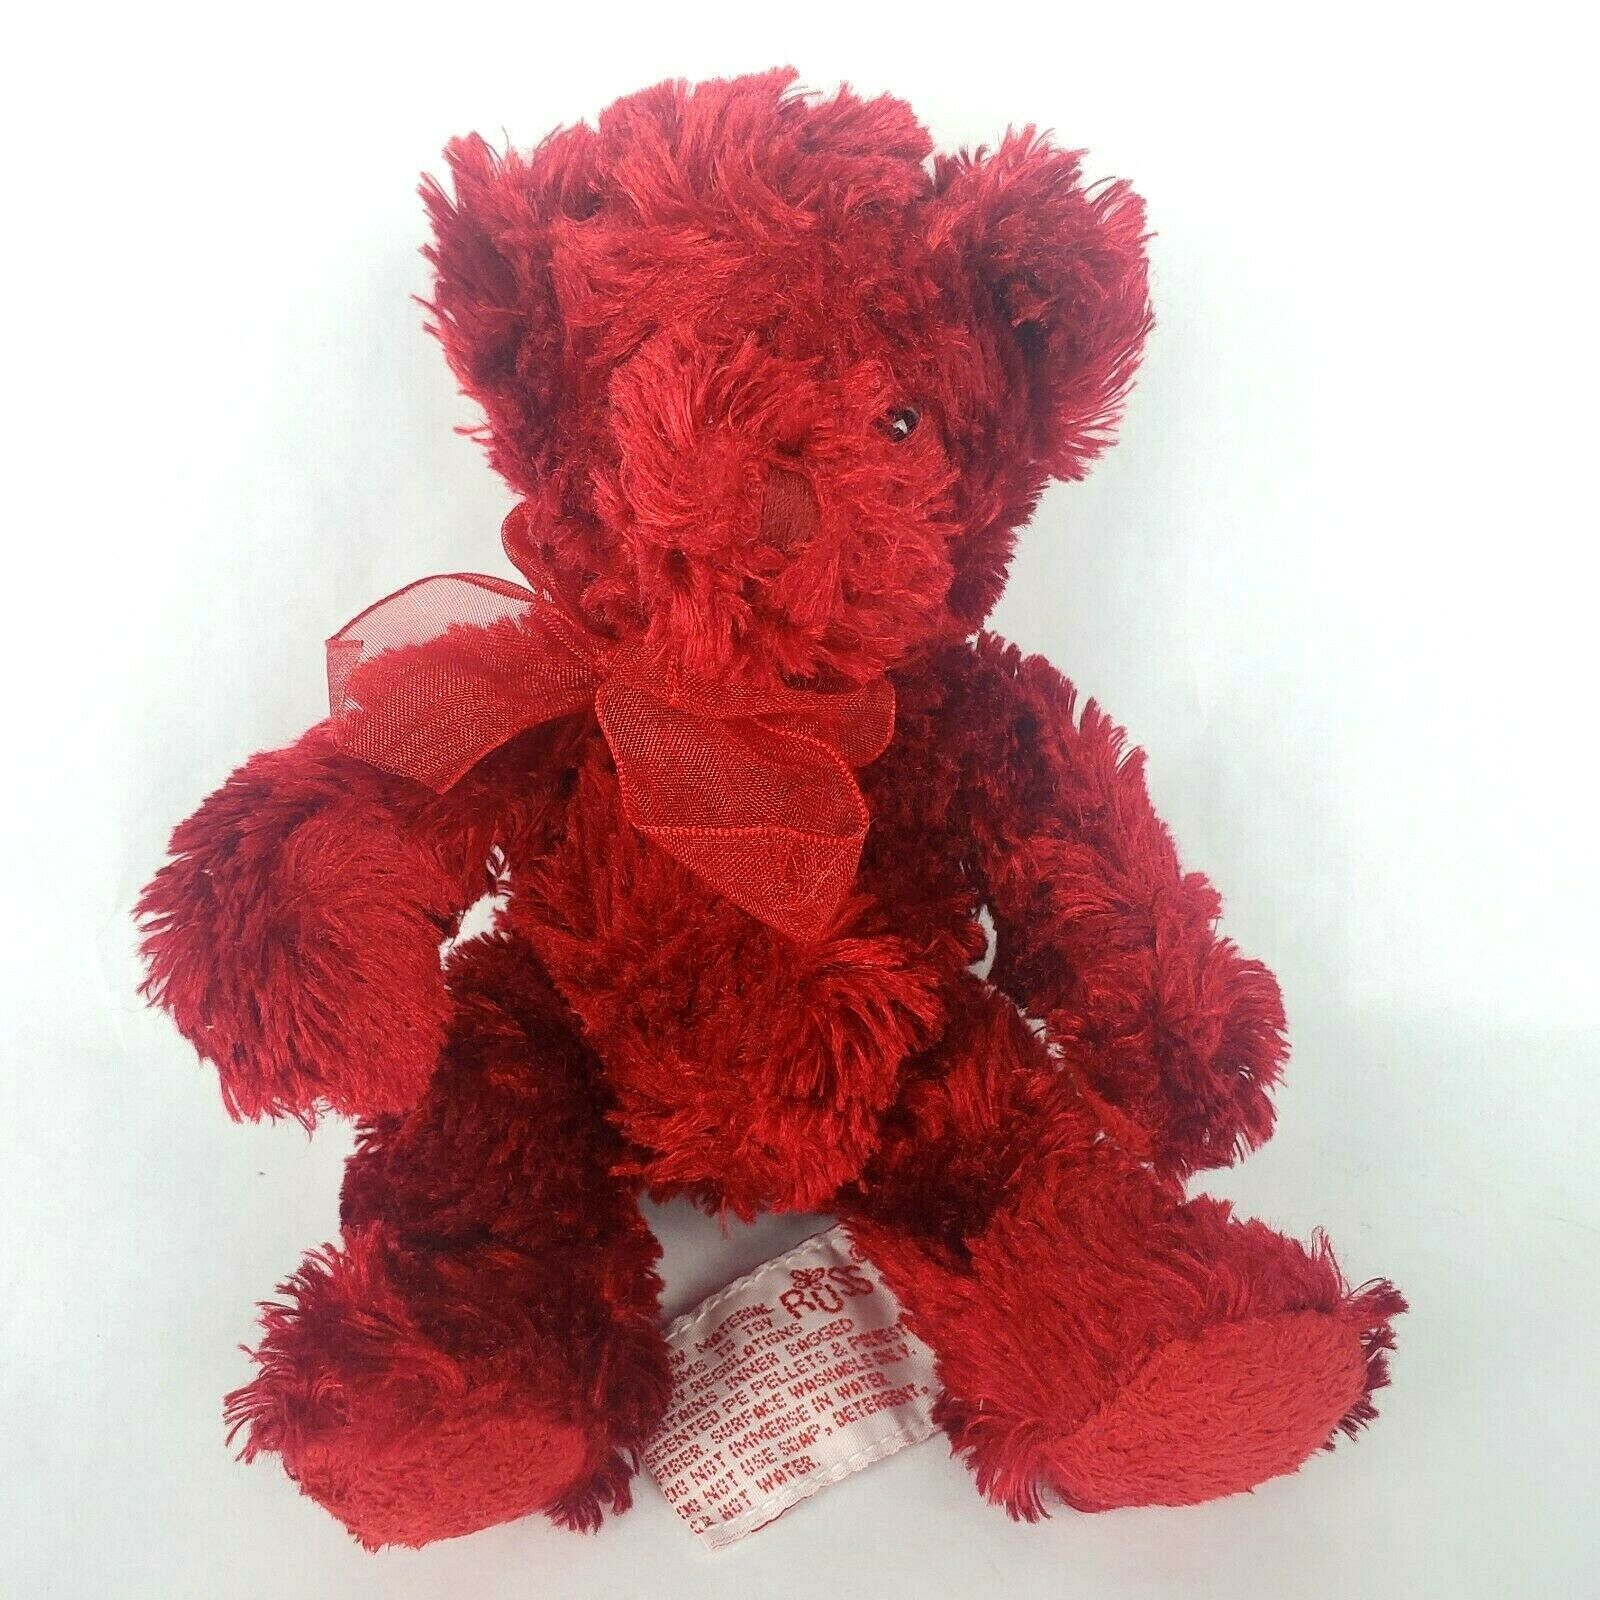 "Vintage Russ Berrie Sherry 7"" Plush Teddy Bear Red Bow Stuffed Animal Toy - $20.55"